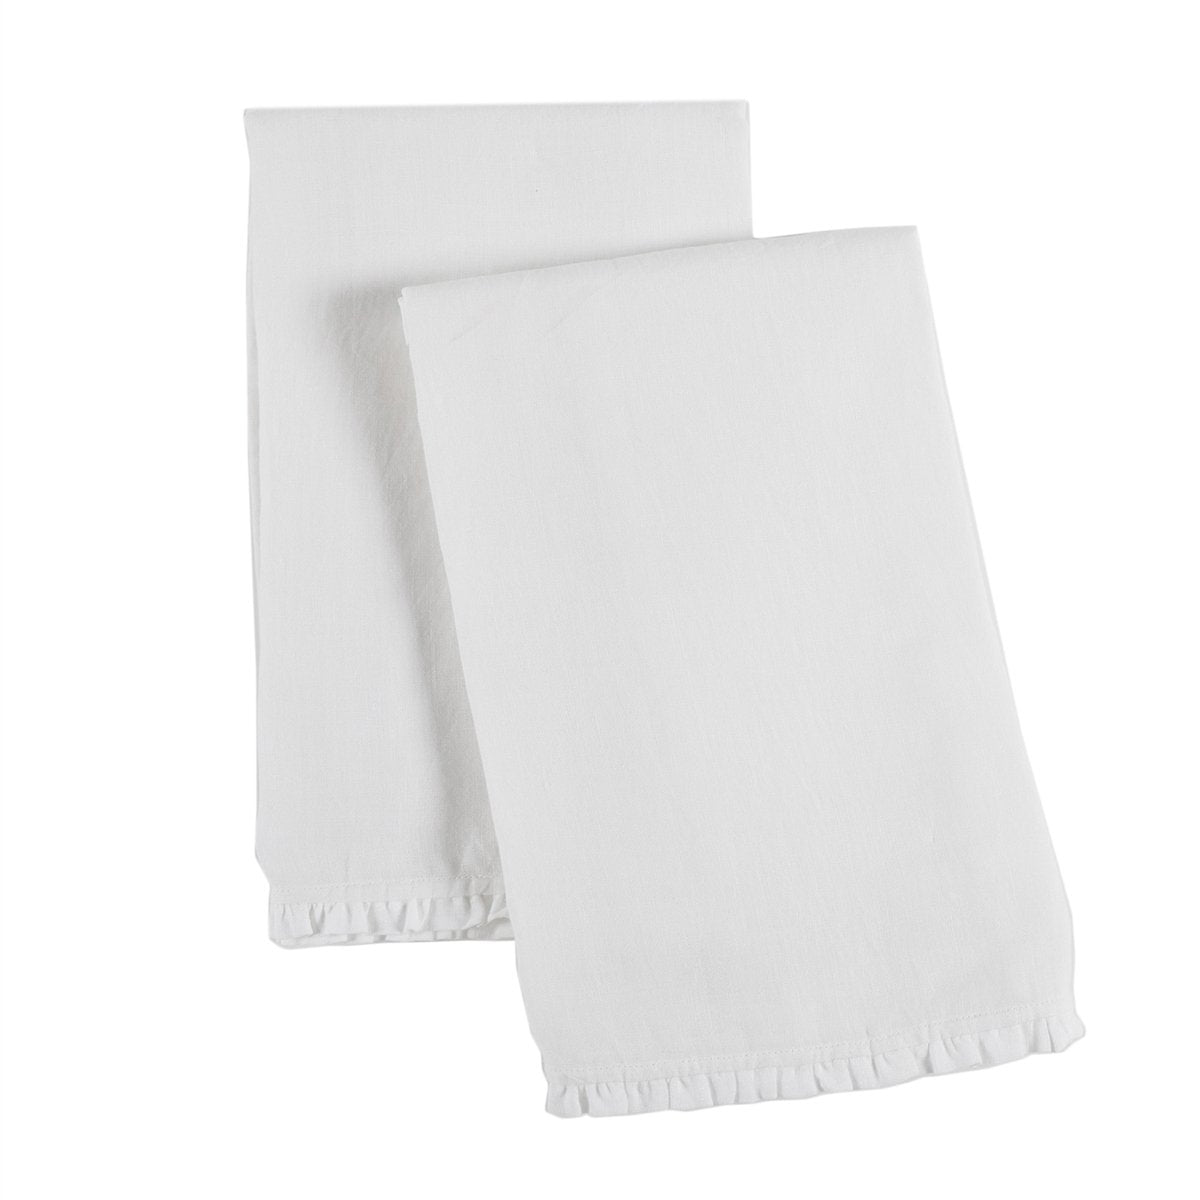 Charlie Pillowcase by Pom Pom at Home-Bed & Bath-Pom Pom-Standard-White-A Cottage in the City